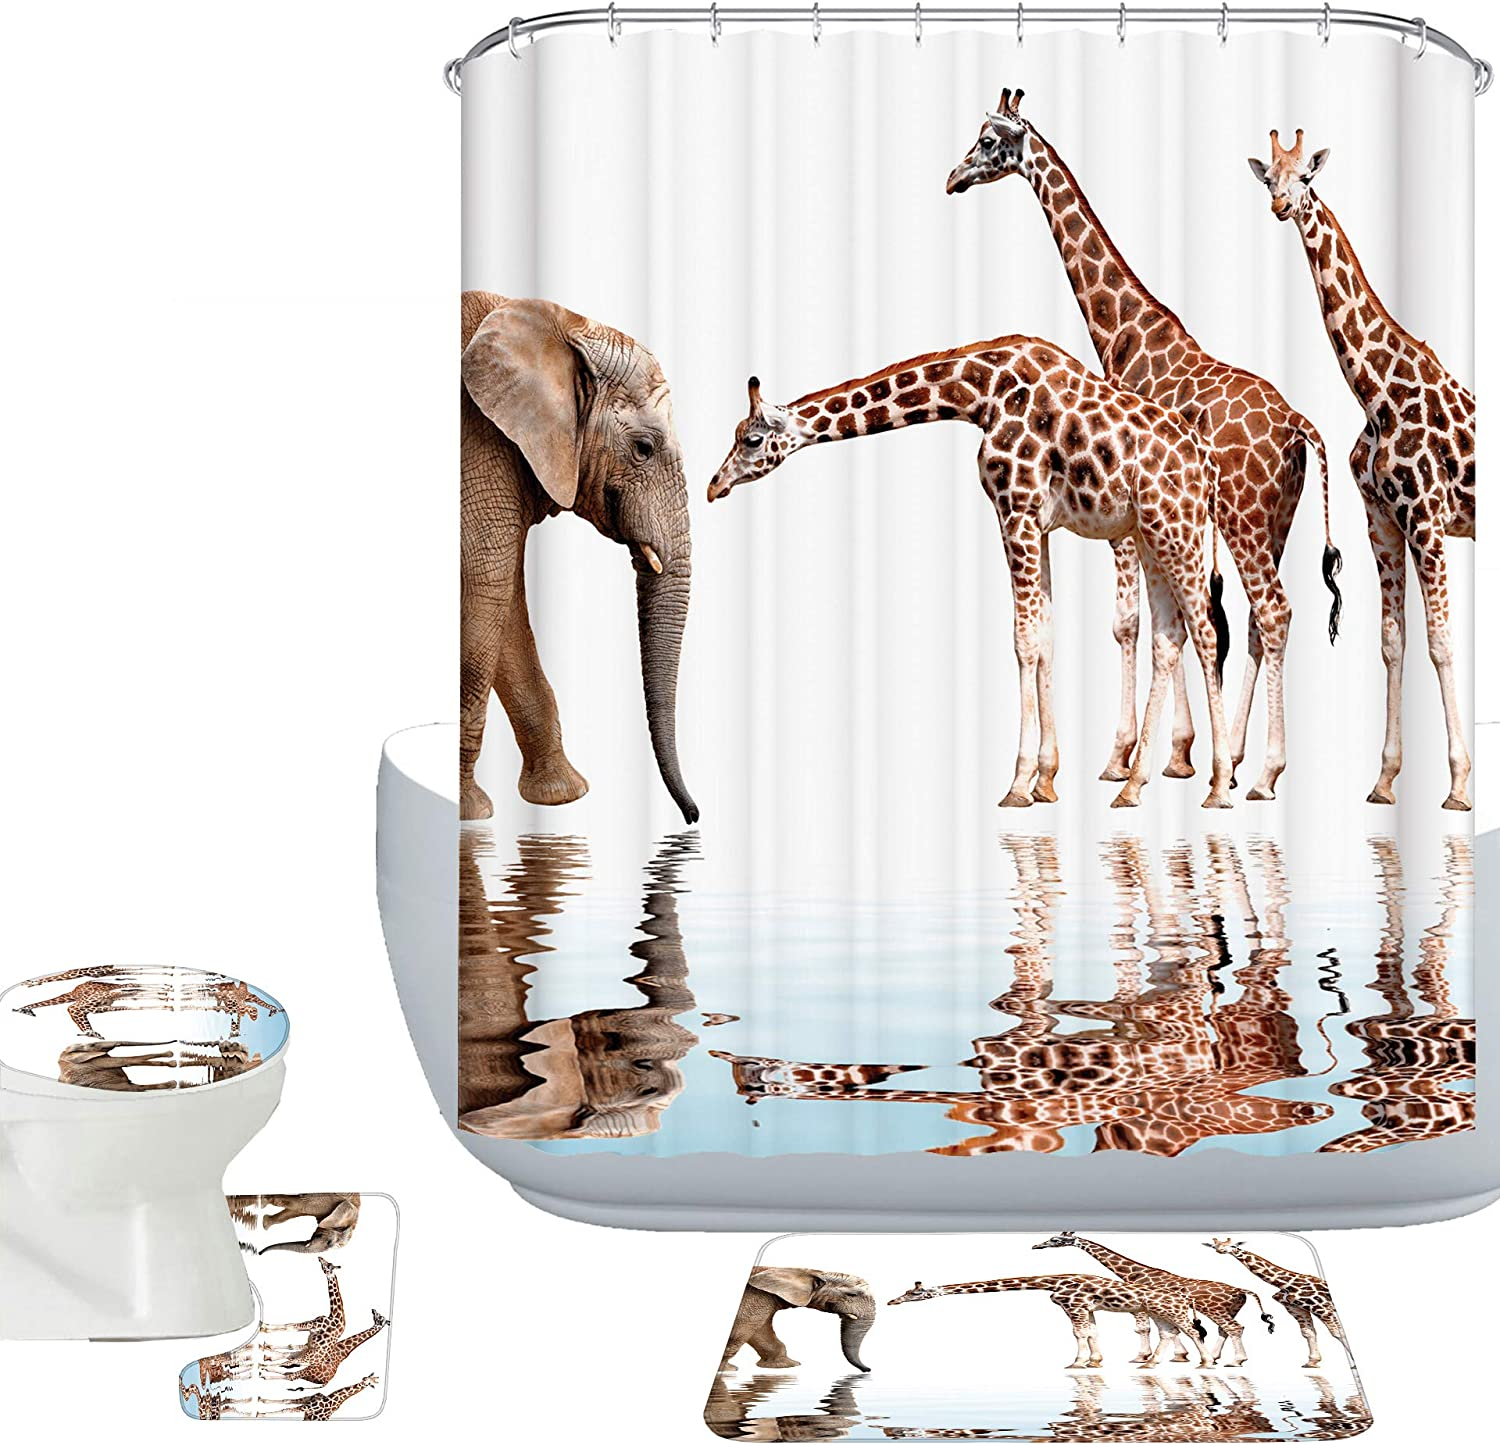 Amagical Cute Animals Giraffes with Ranking TOP19 Elephant Ranking integrated 1st place 16 Pattern Piece Ba